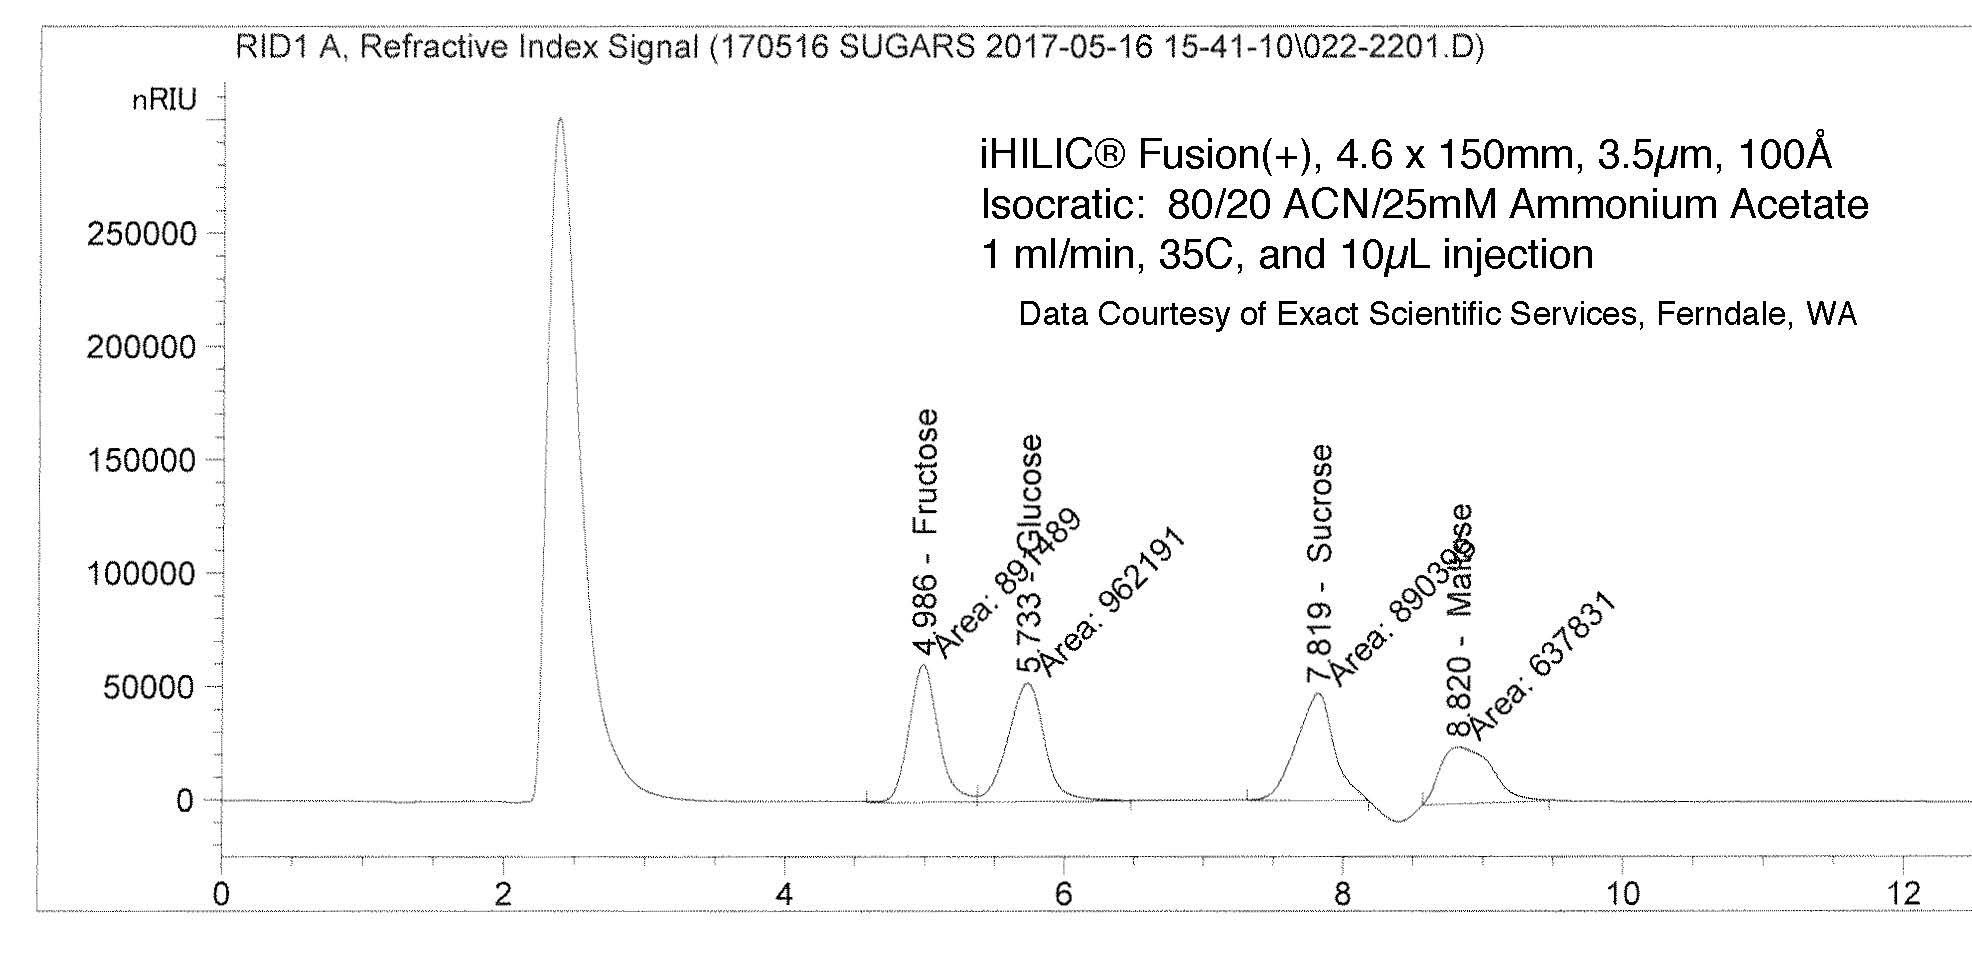 mono- and di-saccharides on iHILIC® Fusion (+) columns